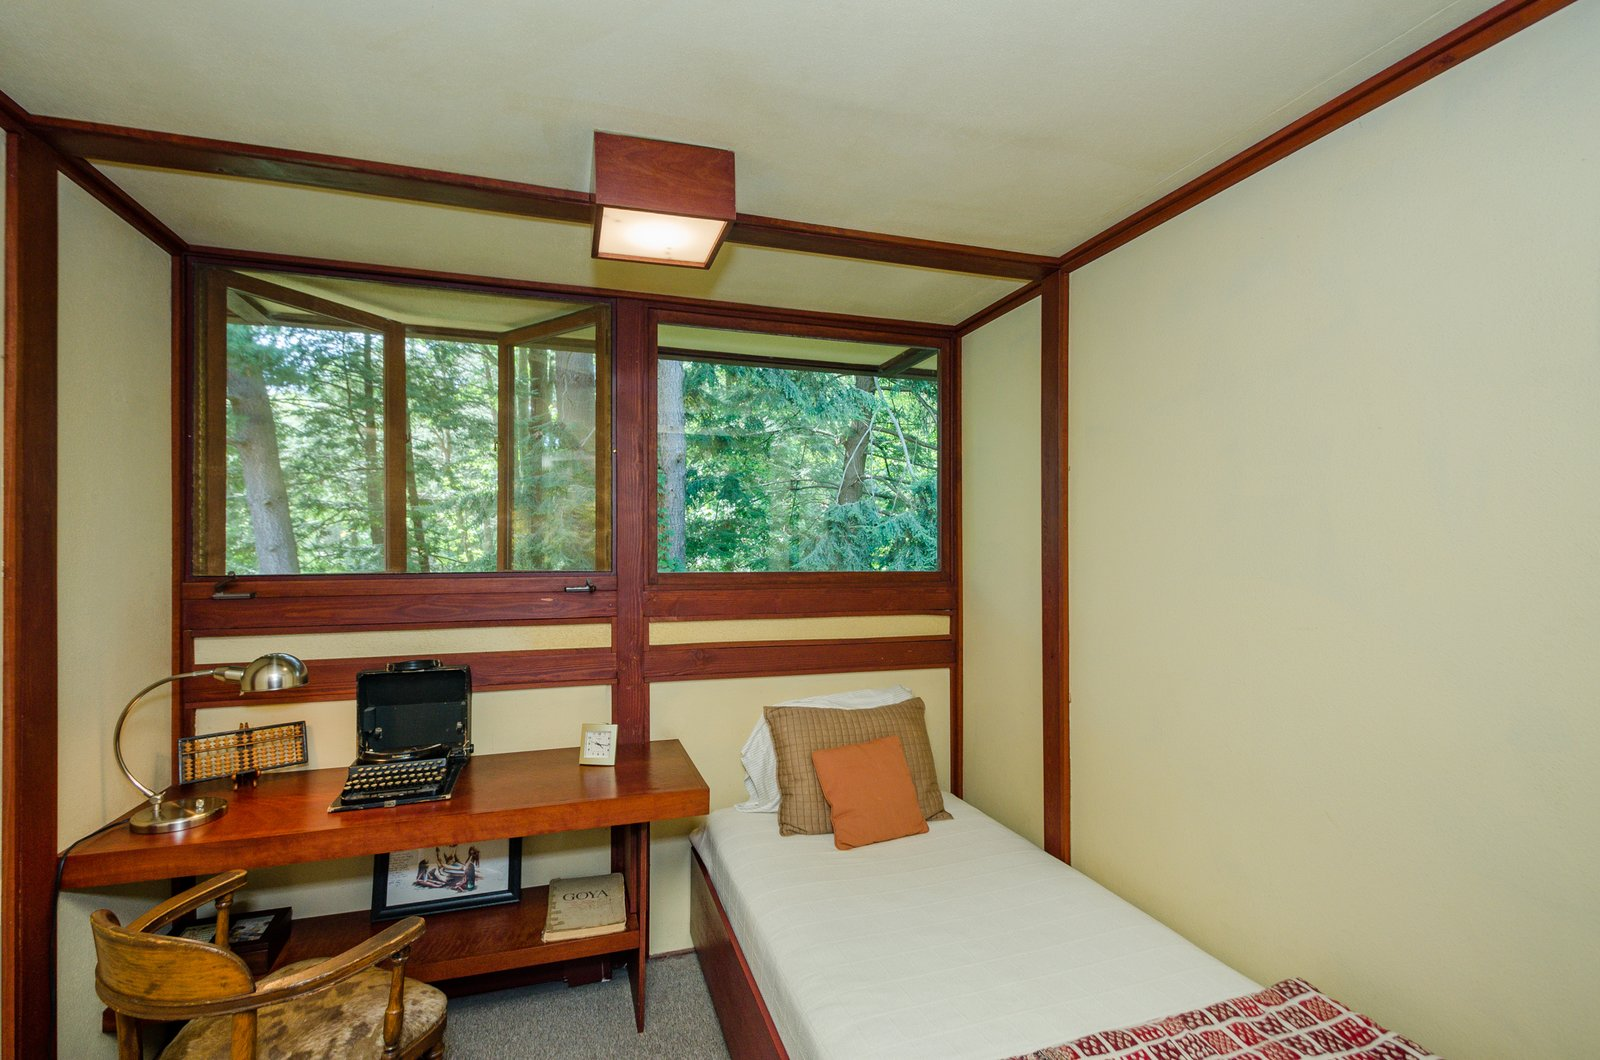 The Frank Lloyd Wright-Designed Louis Penfield House in Ohio Is For Sale For $1.3M - Photo 14 of 17